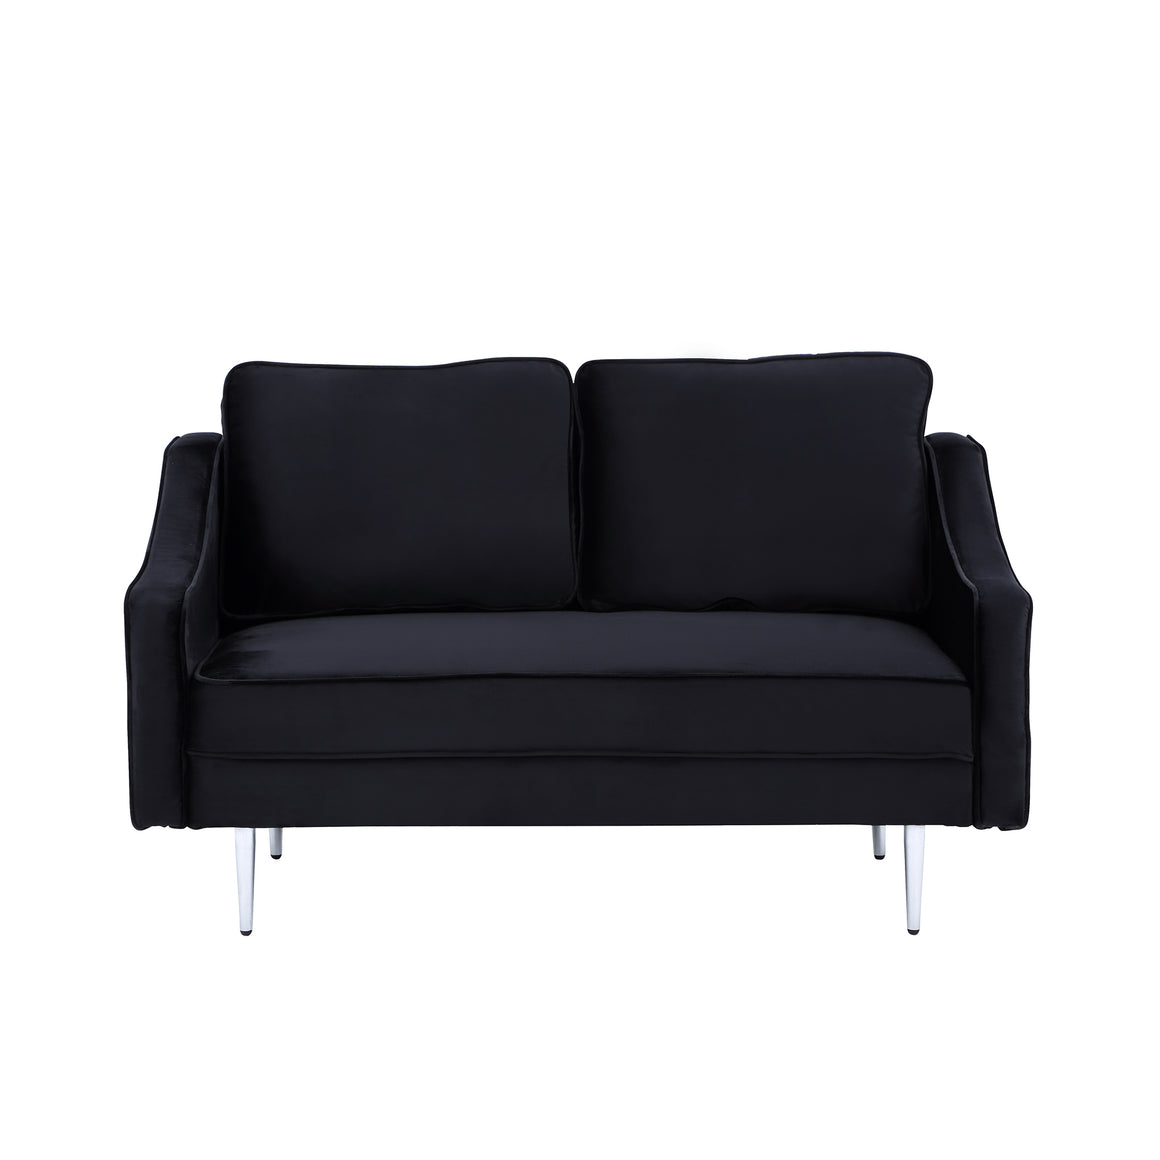 Fablise Accent Loveseat with Stylish Arched Arms in Black Velvet